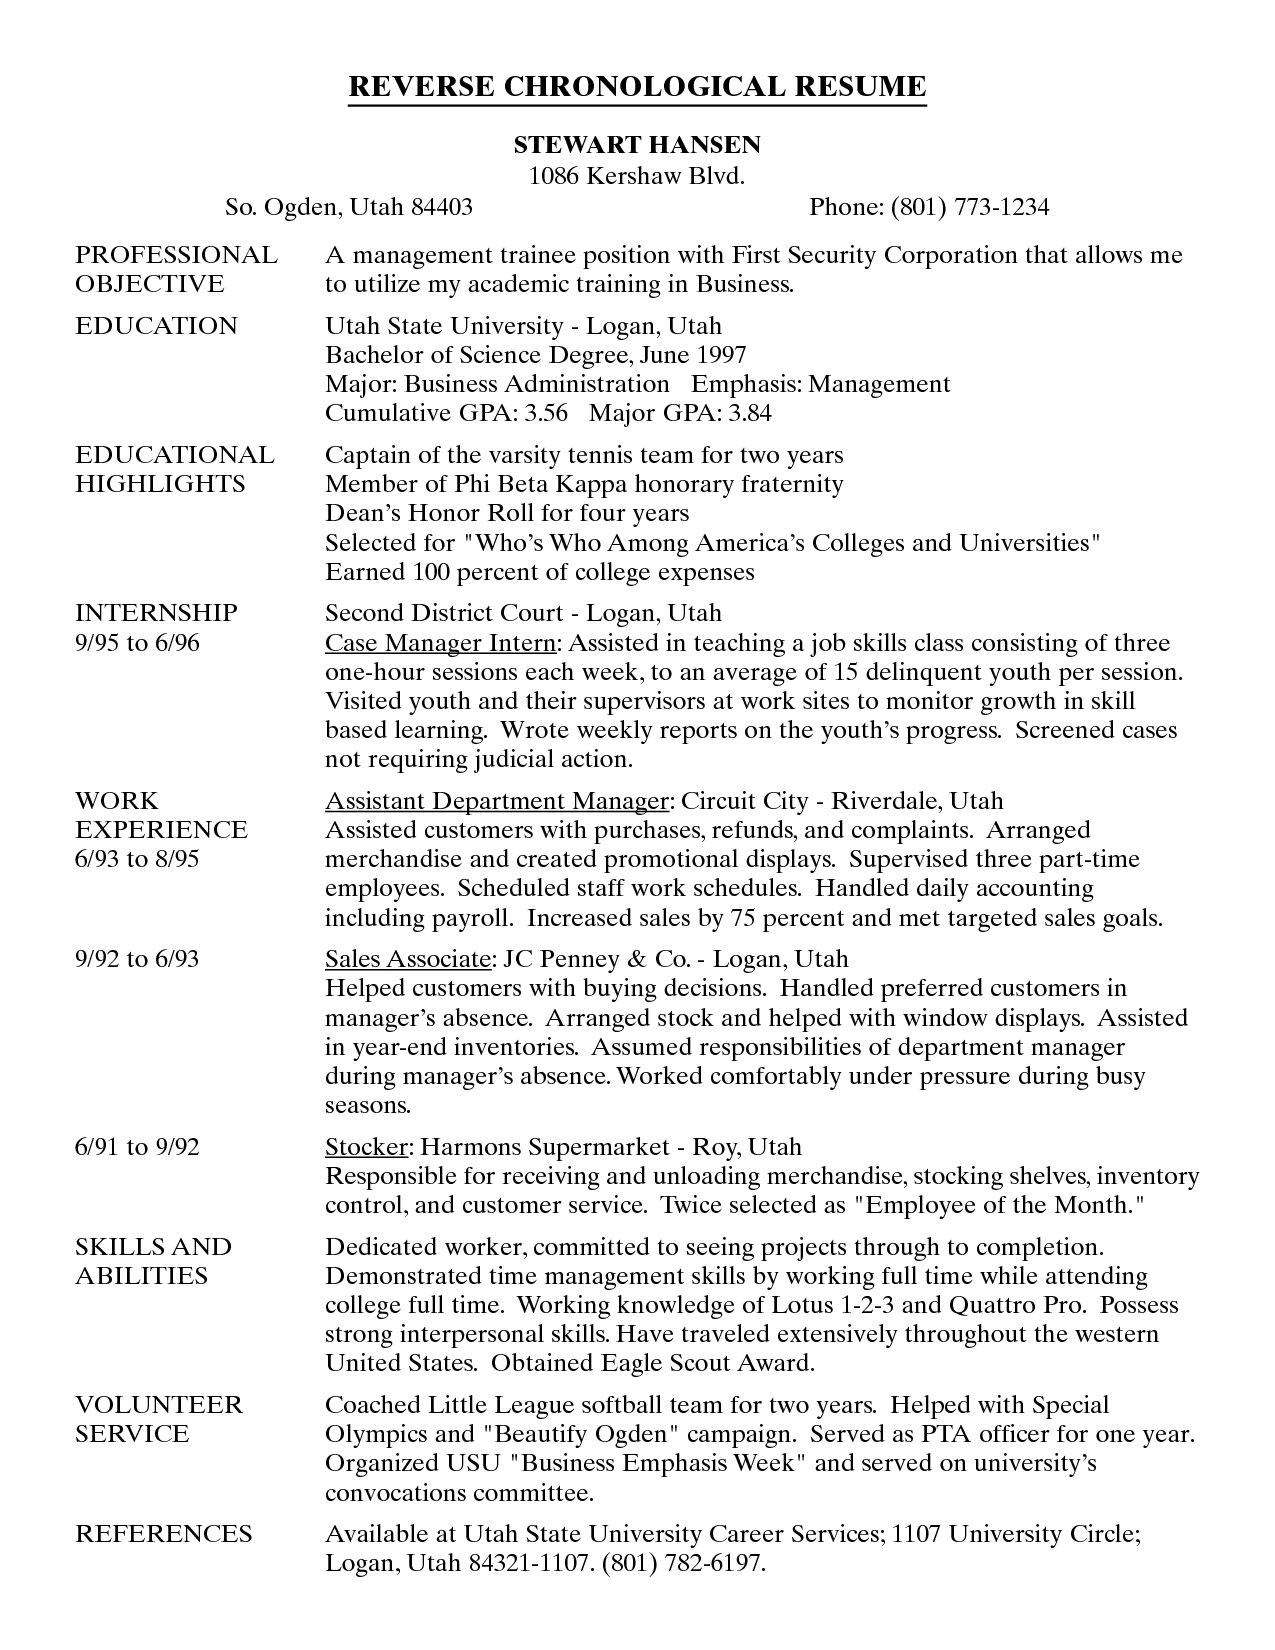 resume Order On Resume chronological order resume example dc0364f86 the reverse example